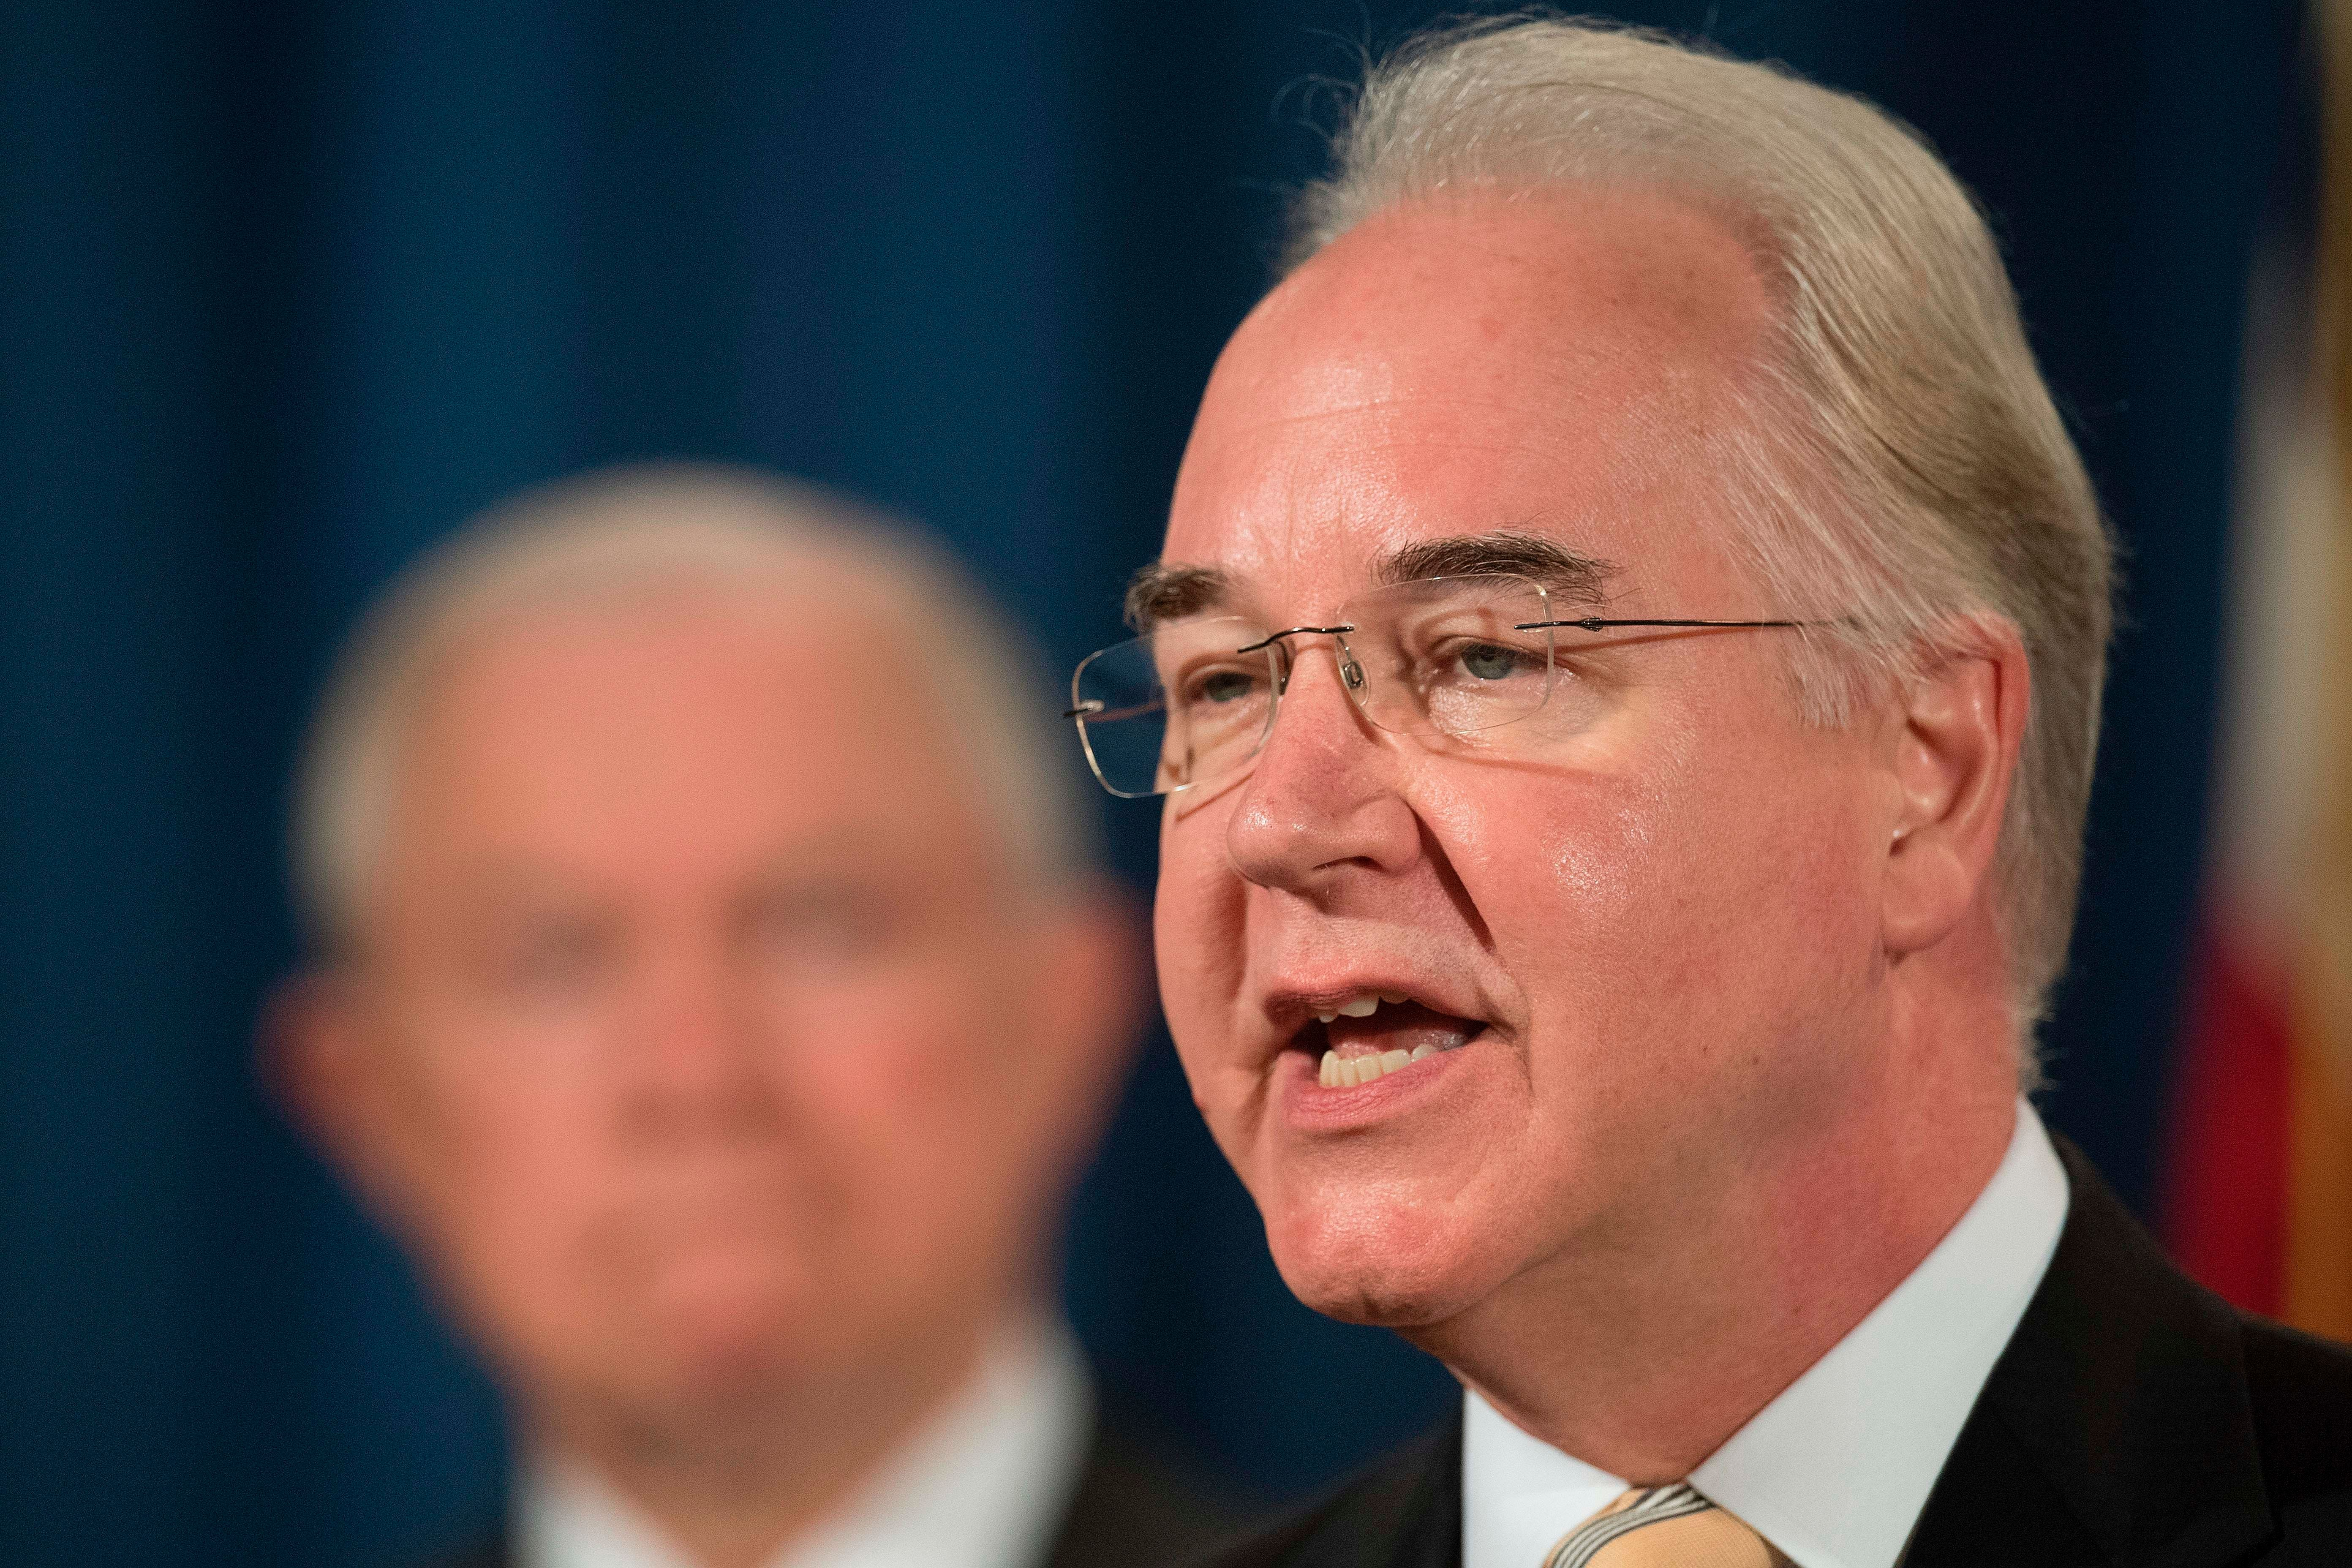 Tom Price Needs Private Jets Because He's Very Busy, Trump Administration Says